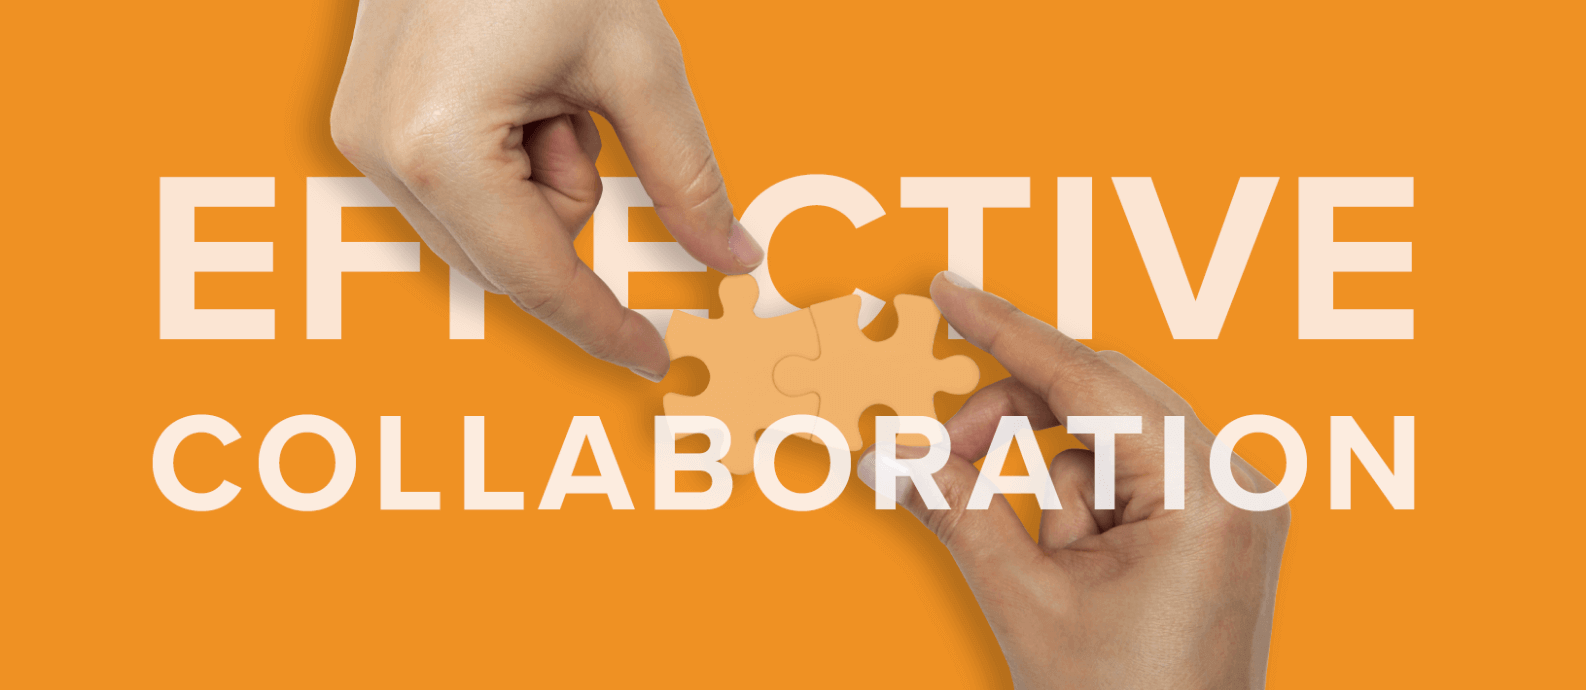 Effective collaboration with Your Web Design Agency